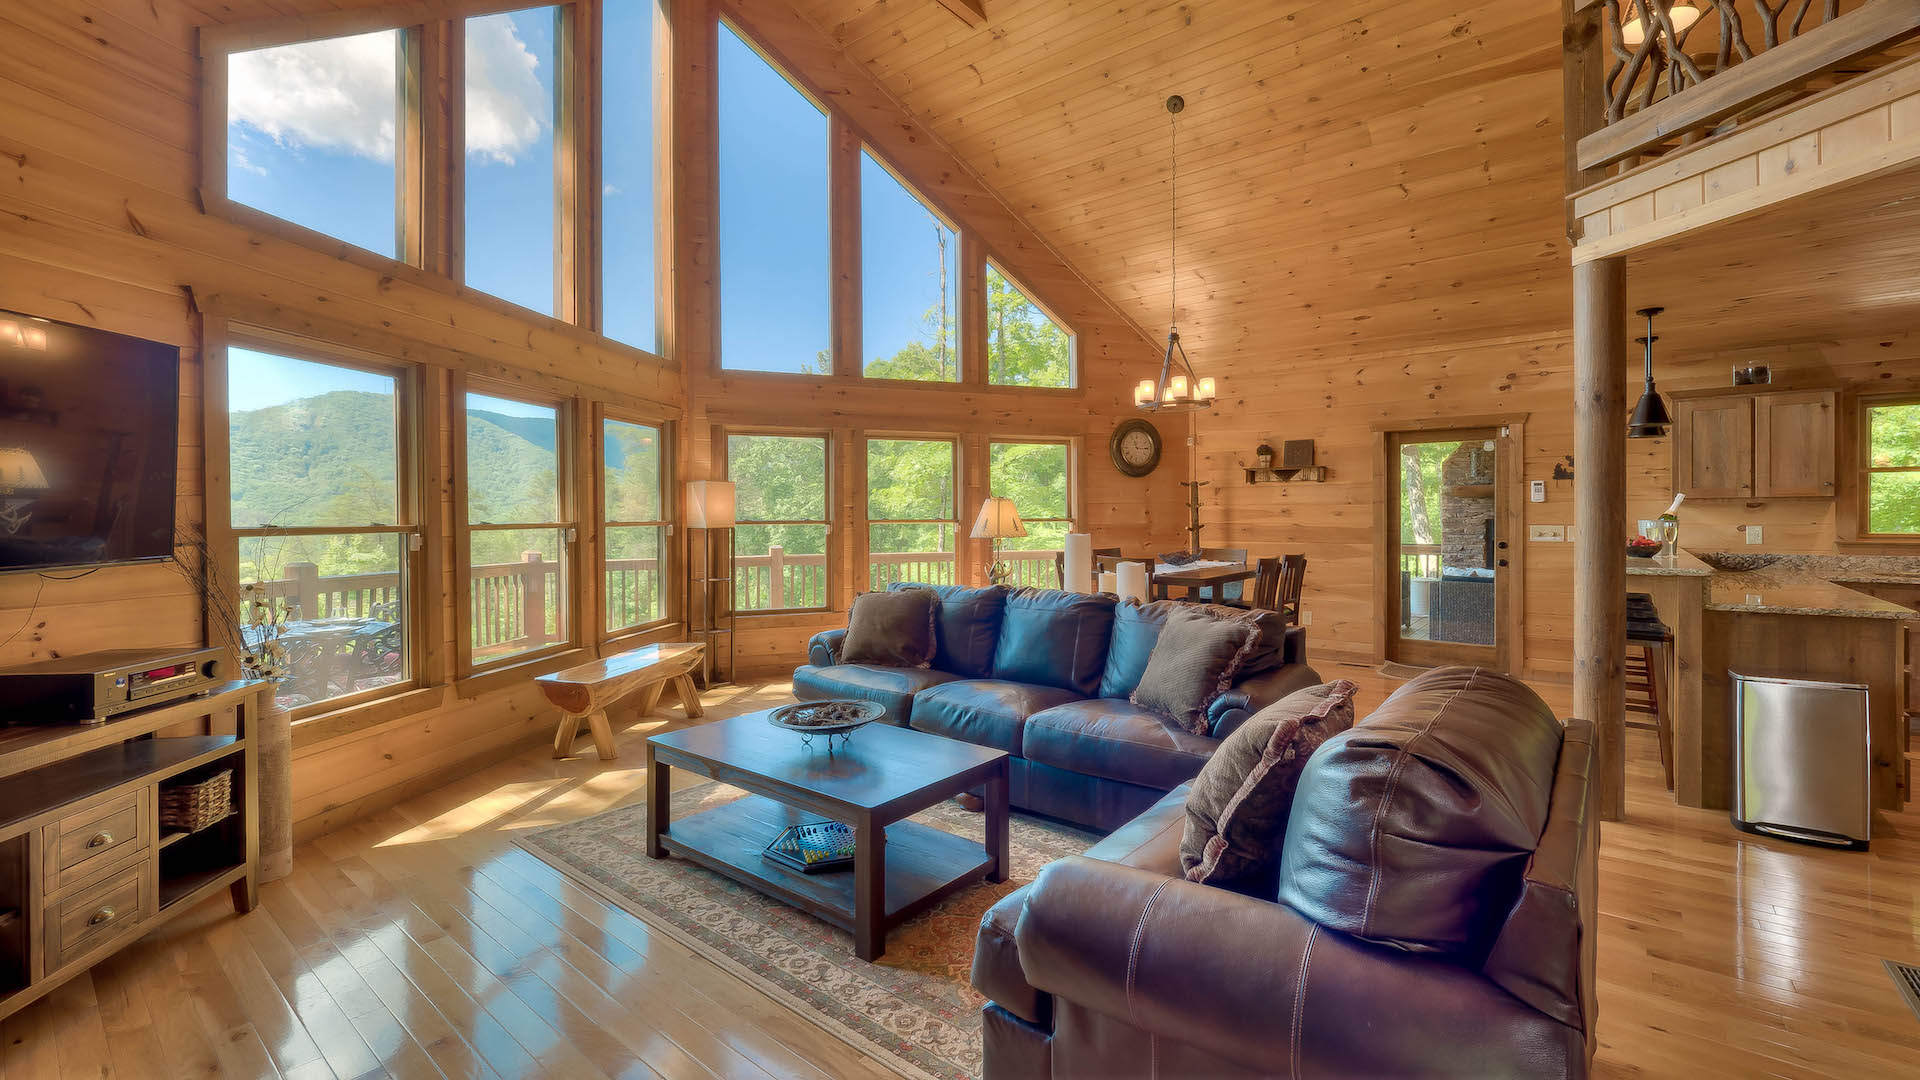 mountains cabin blue pinterest cabins rental ridge away dream ga home rentals north last the at georgia in pin